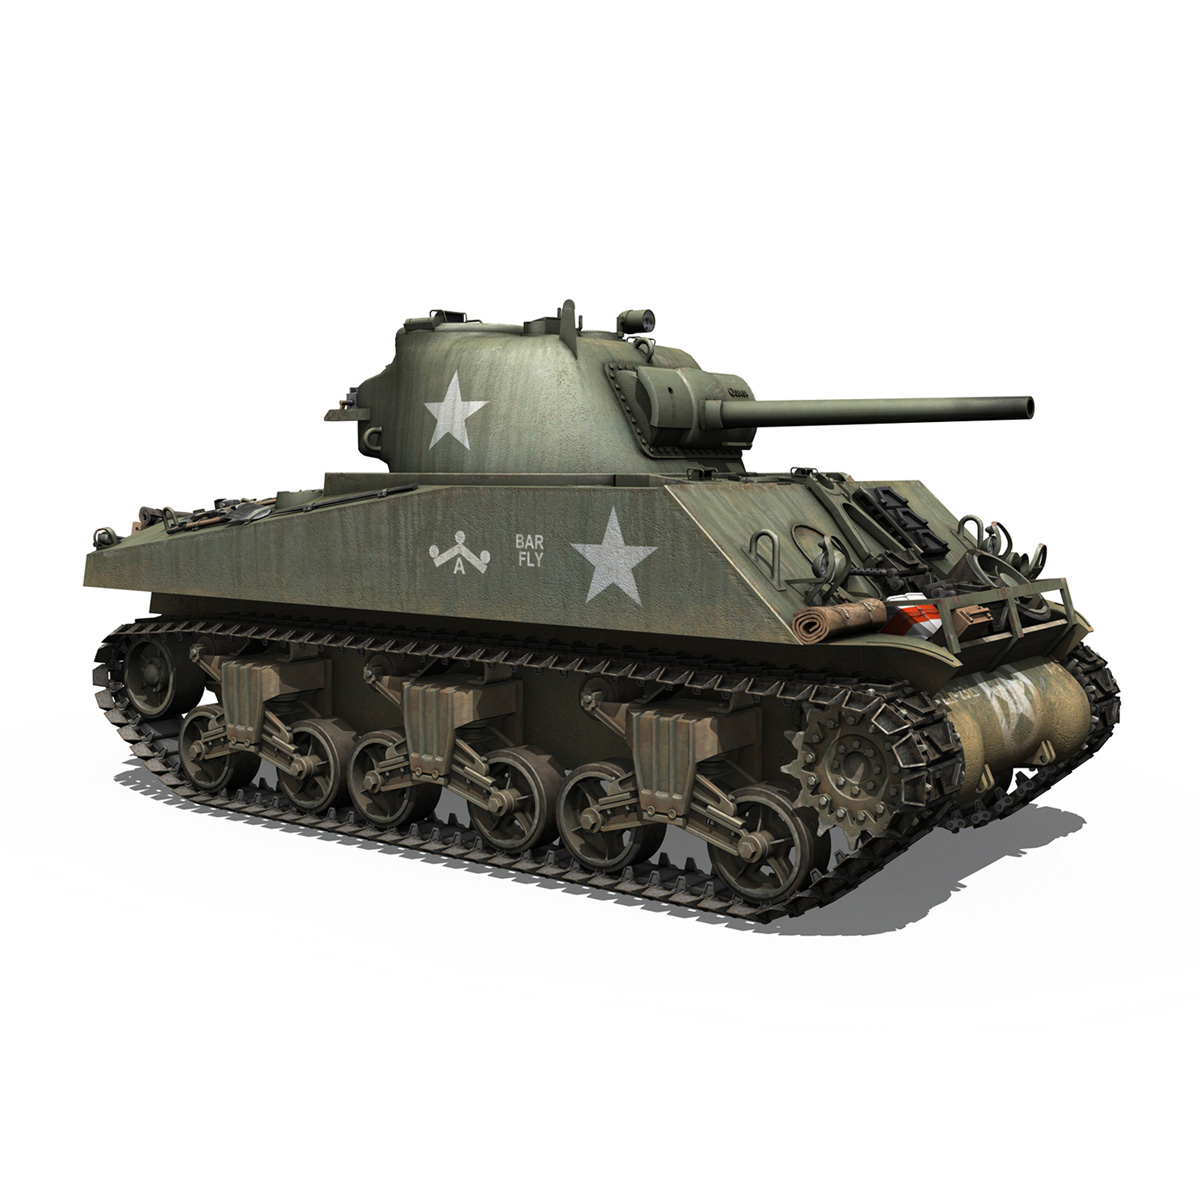 M4A3 75mm - Sherman - Barfly 3d model  266001